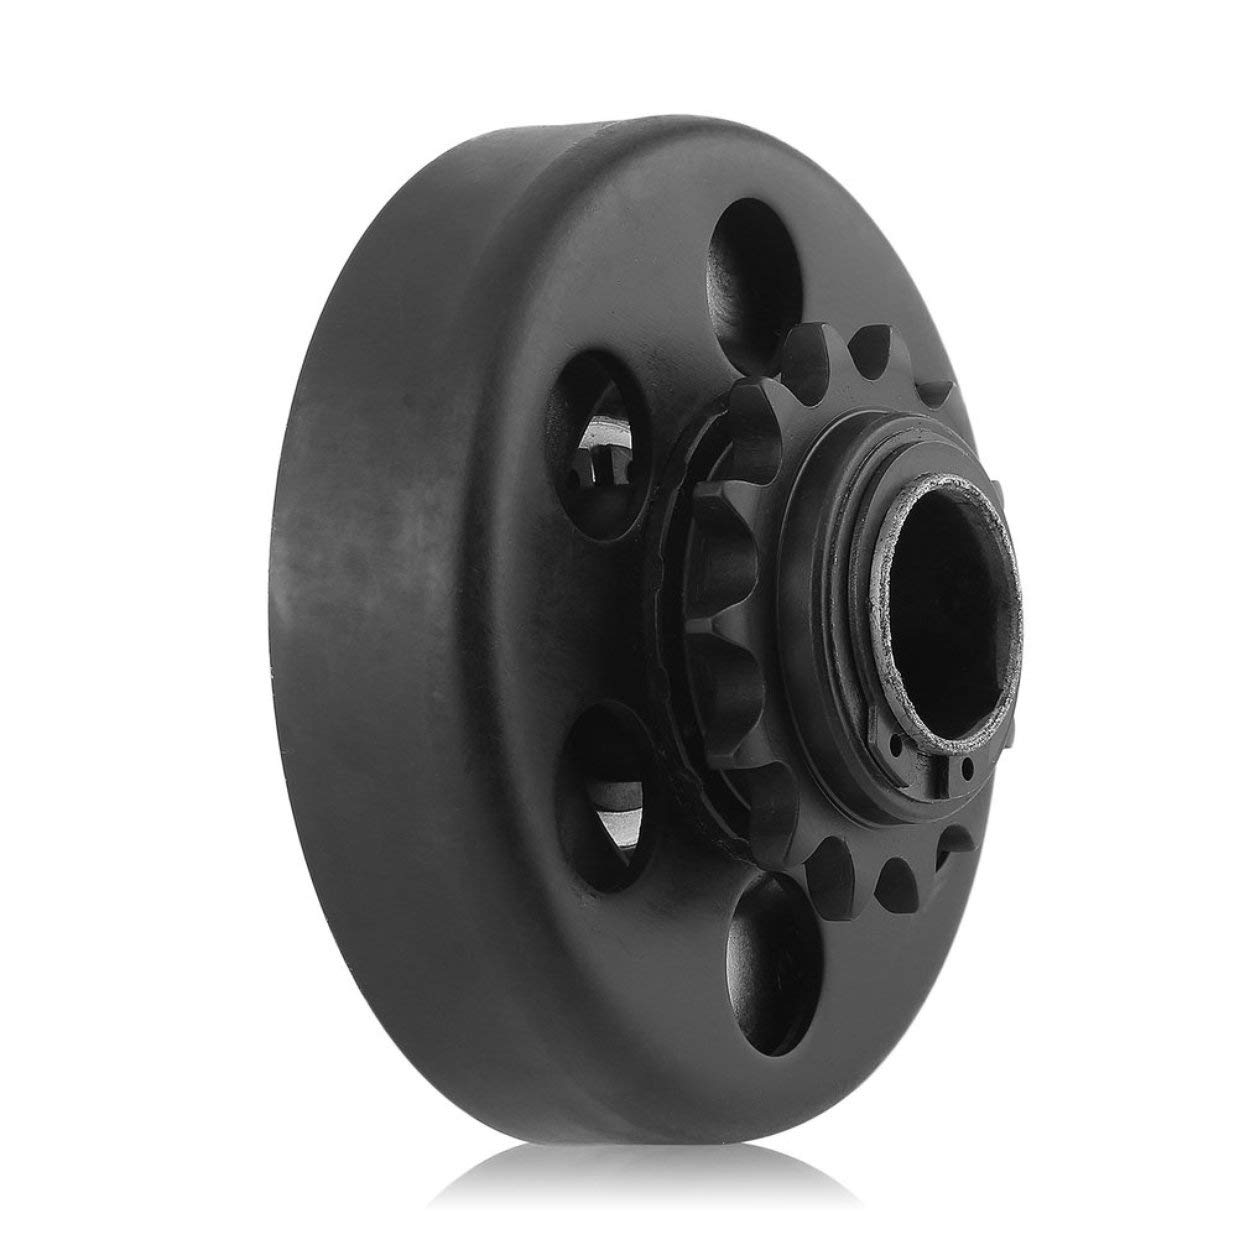 Centrifugal Clutch 1inch Bore 14T 14 Tooth Suitable For 40 41 420 Chain Up To 13HP 2300 RPM For Mini Bike Go Kart Racing